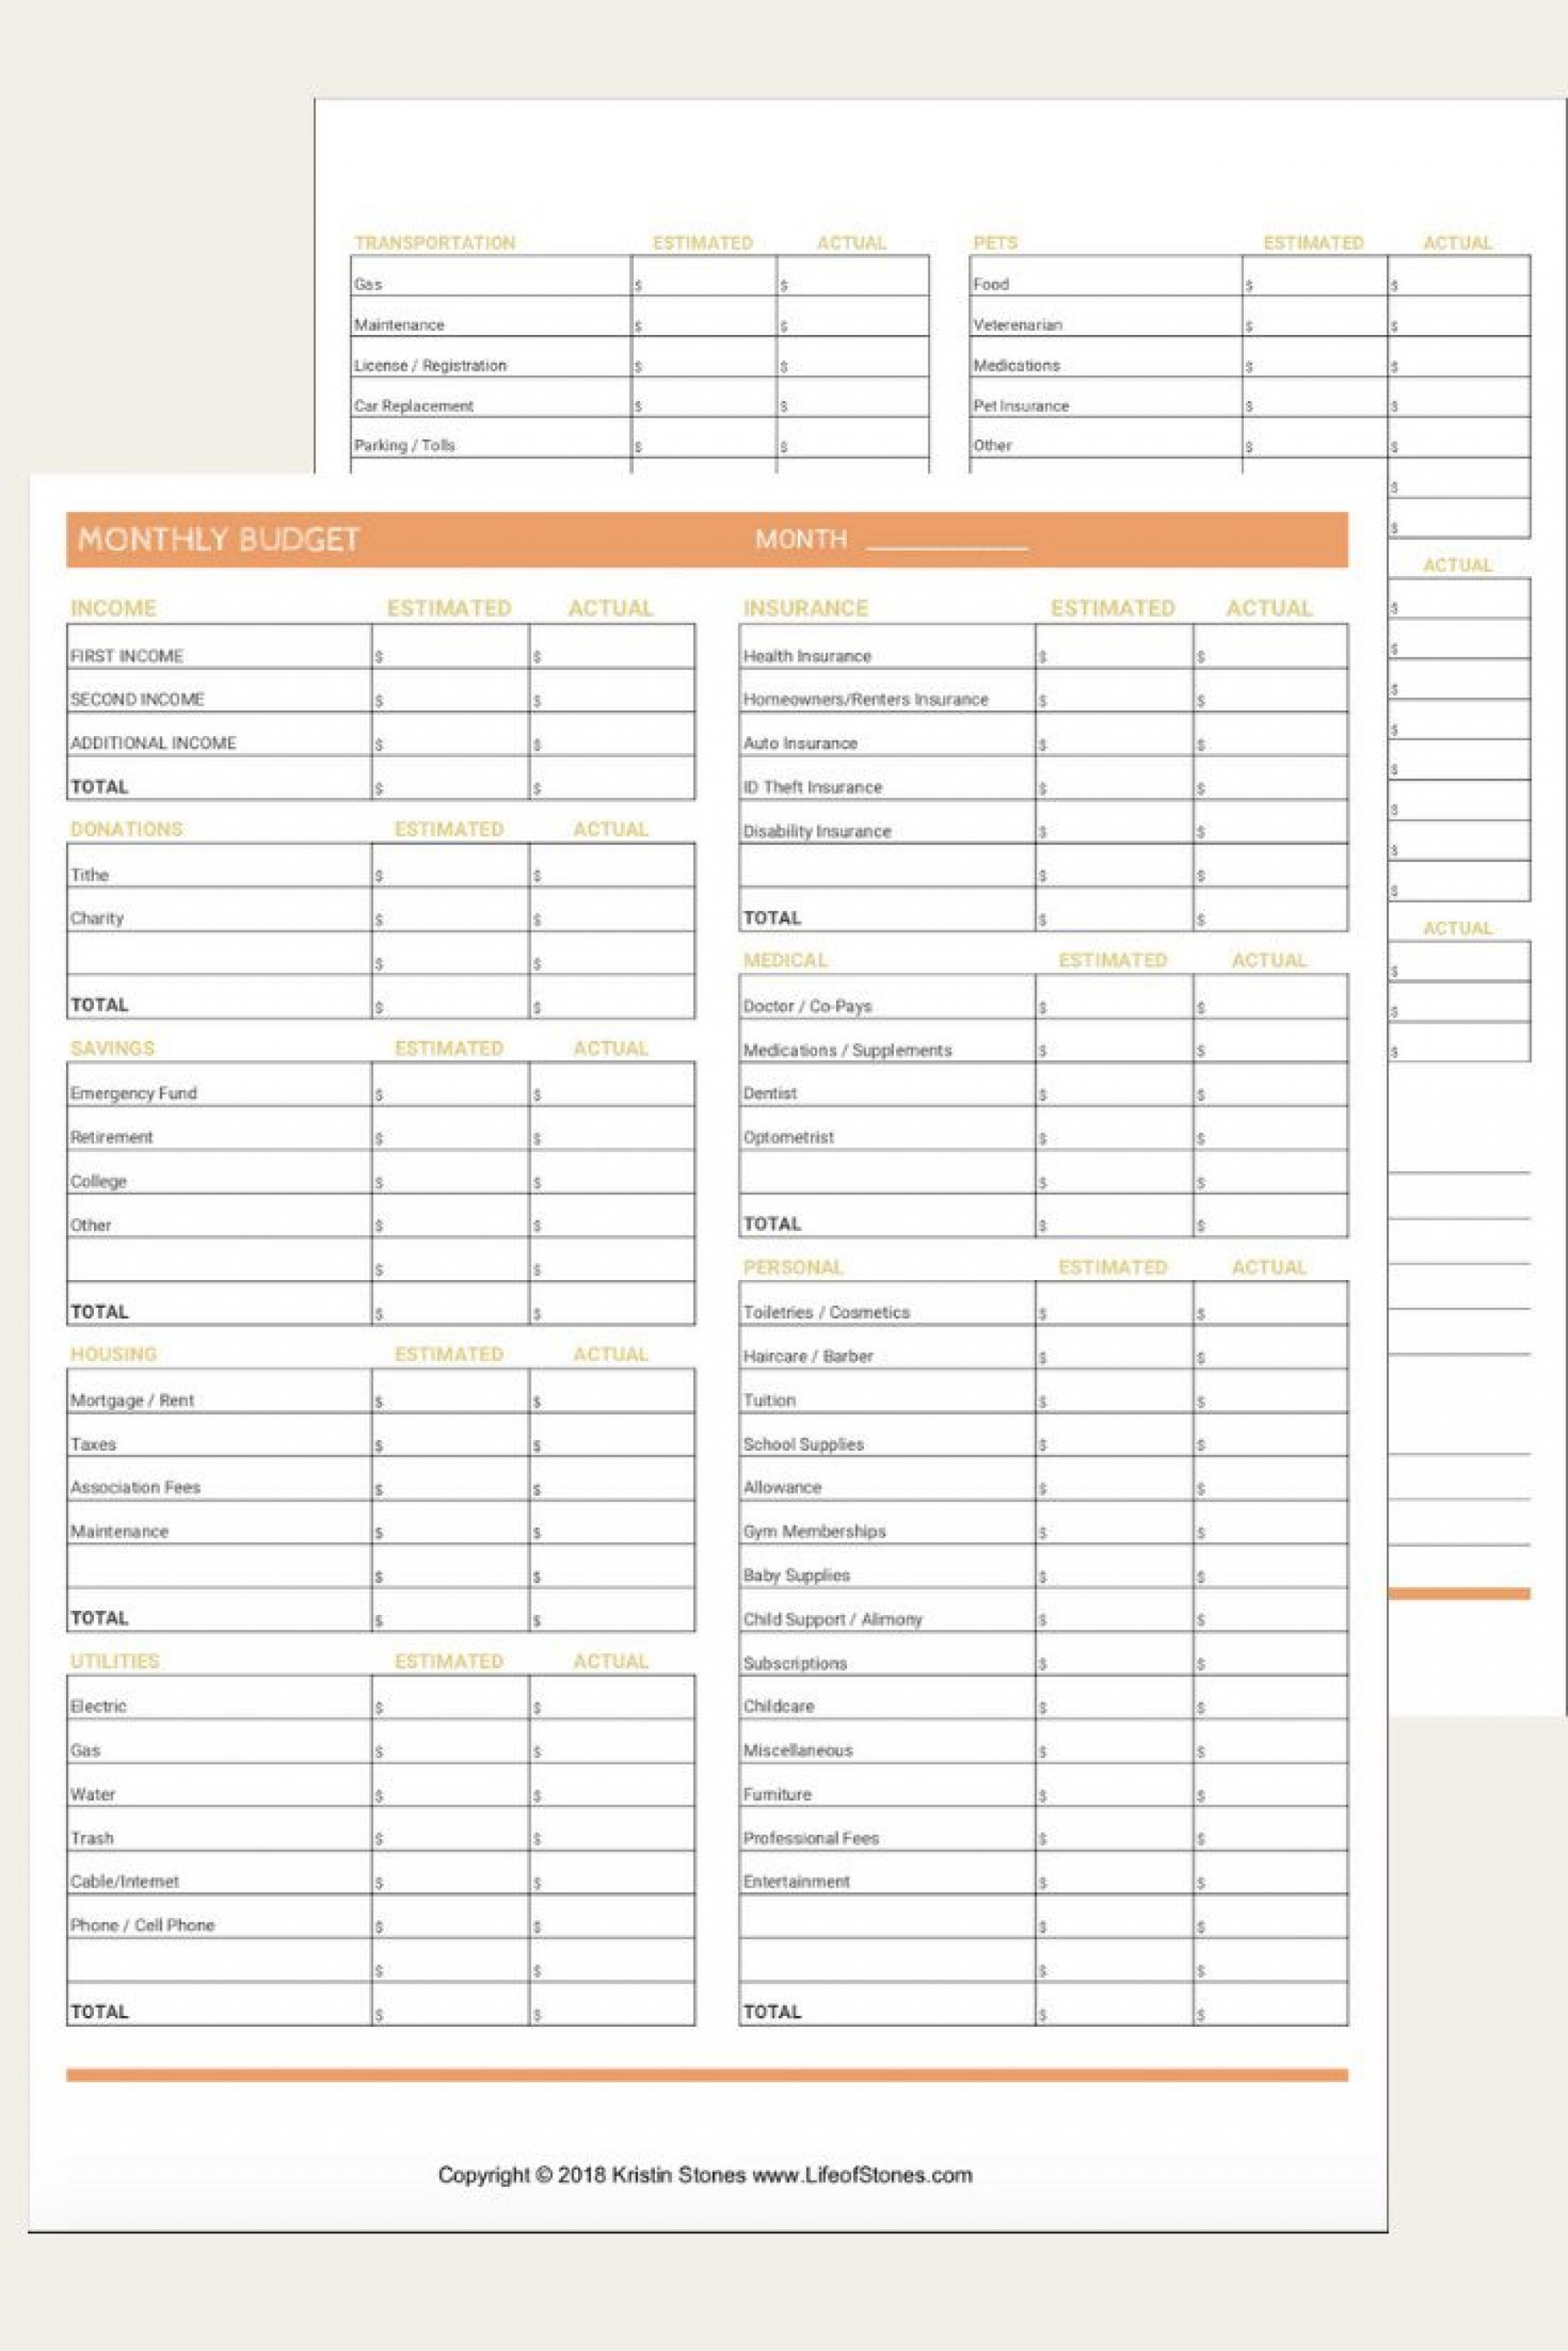 004 Fascinating Free Printable Monthly Budget Form Photo  Forms Personal Template Blank Spreadsheet1920